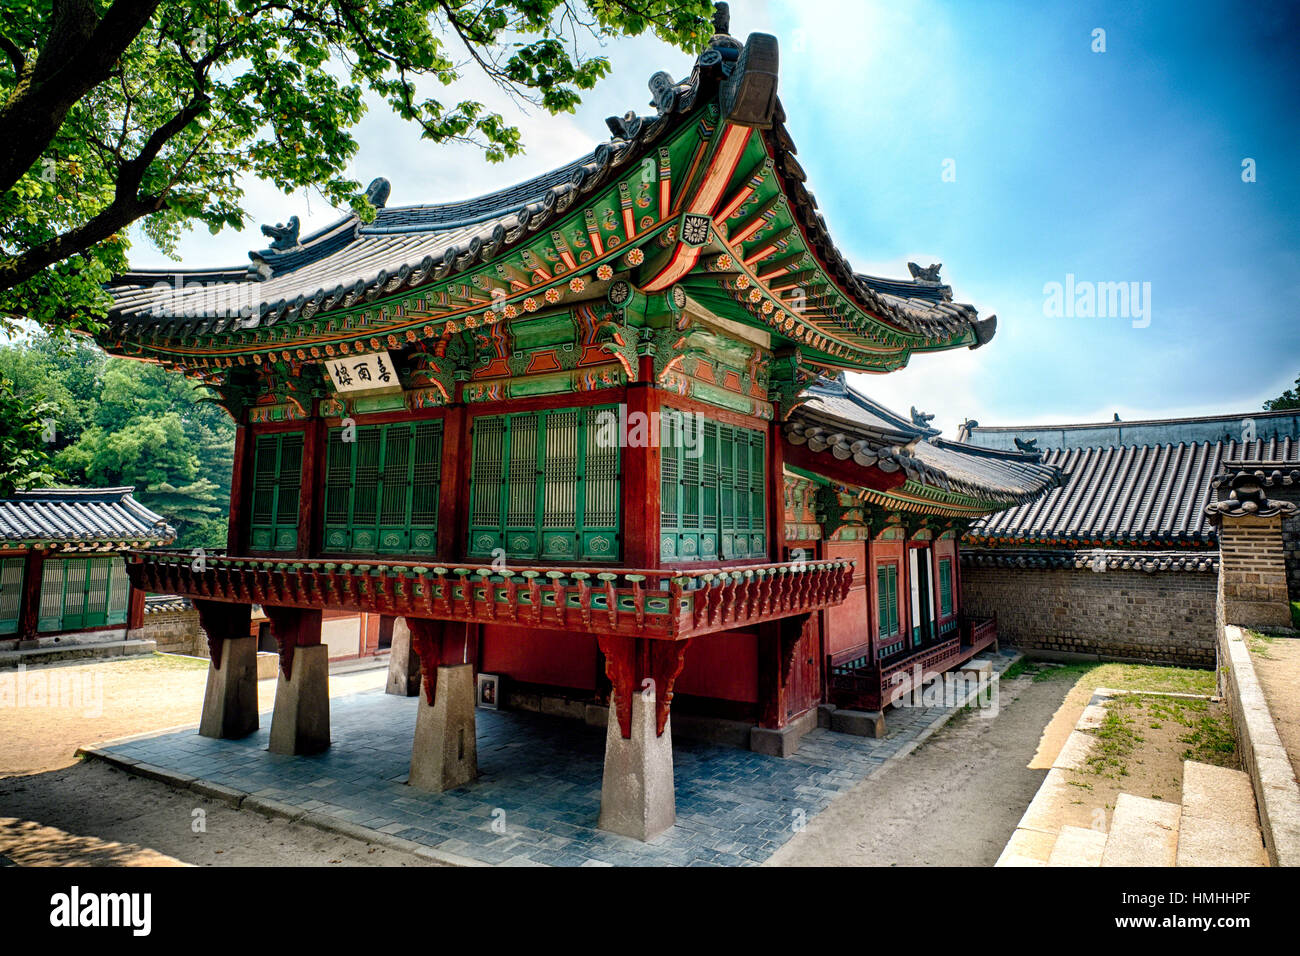 Ornate Traditional Korean Buildings in the Changdeokgung Royal Palace, Seoul, South Korea - Stock Image